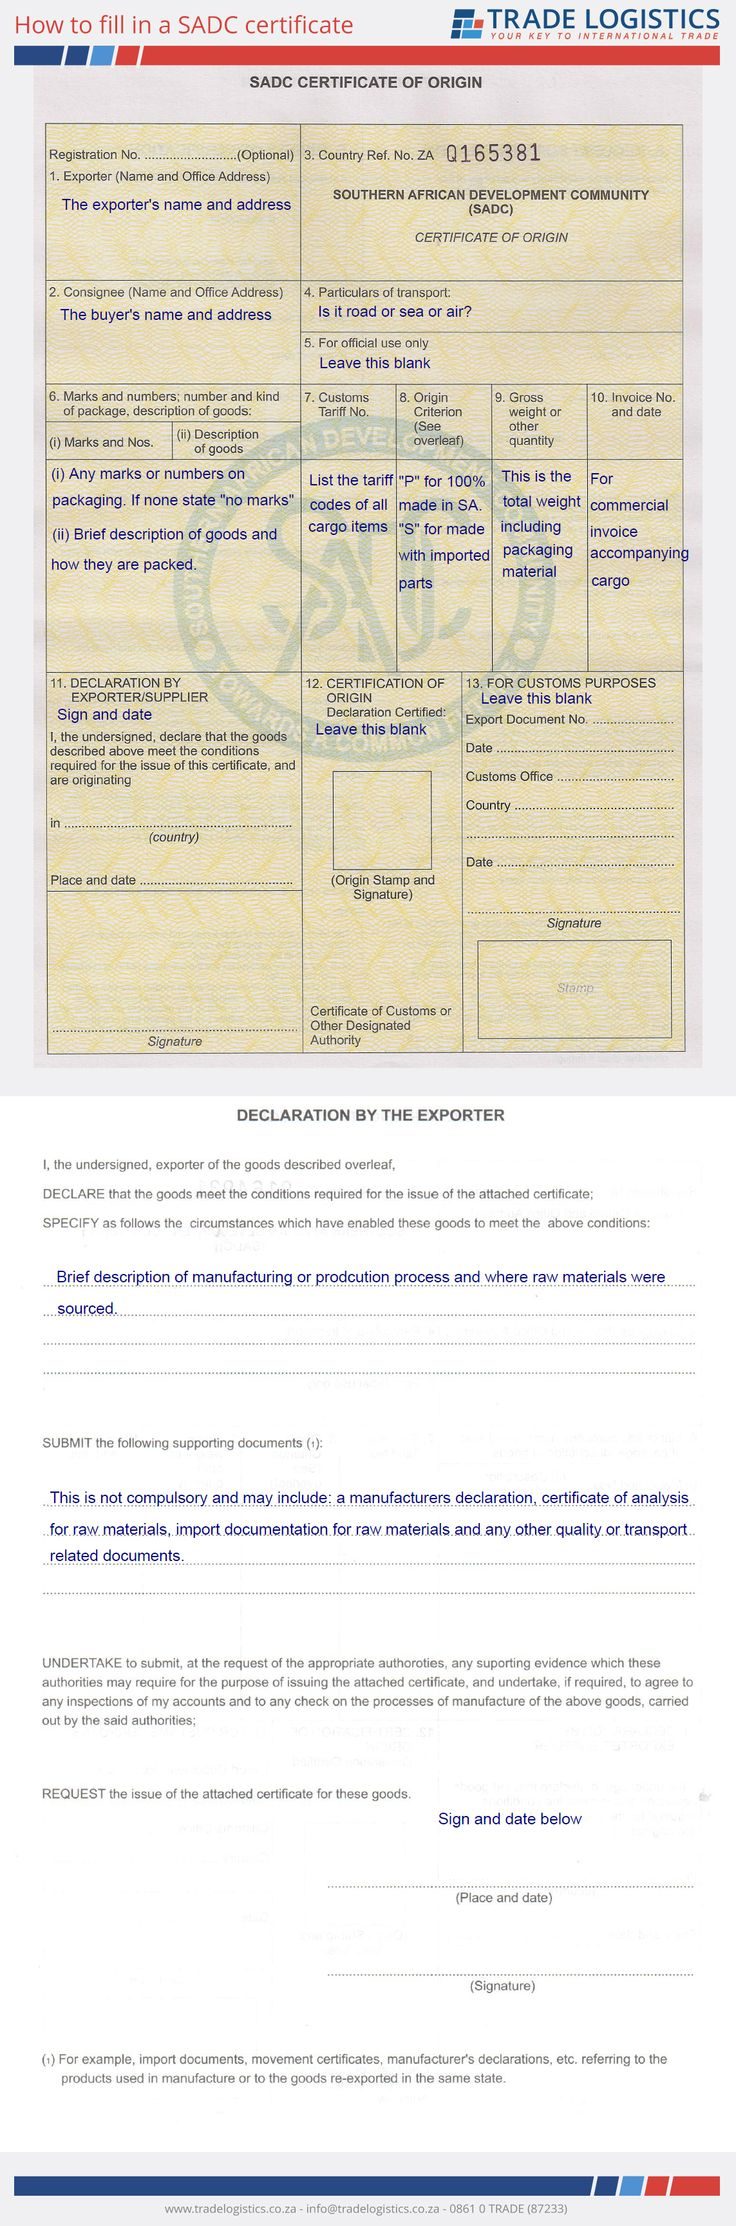 How to fill in a SADC certificate